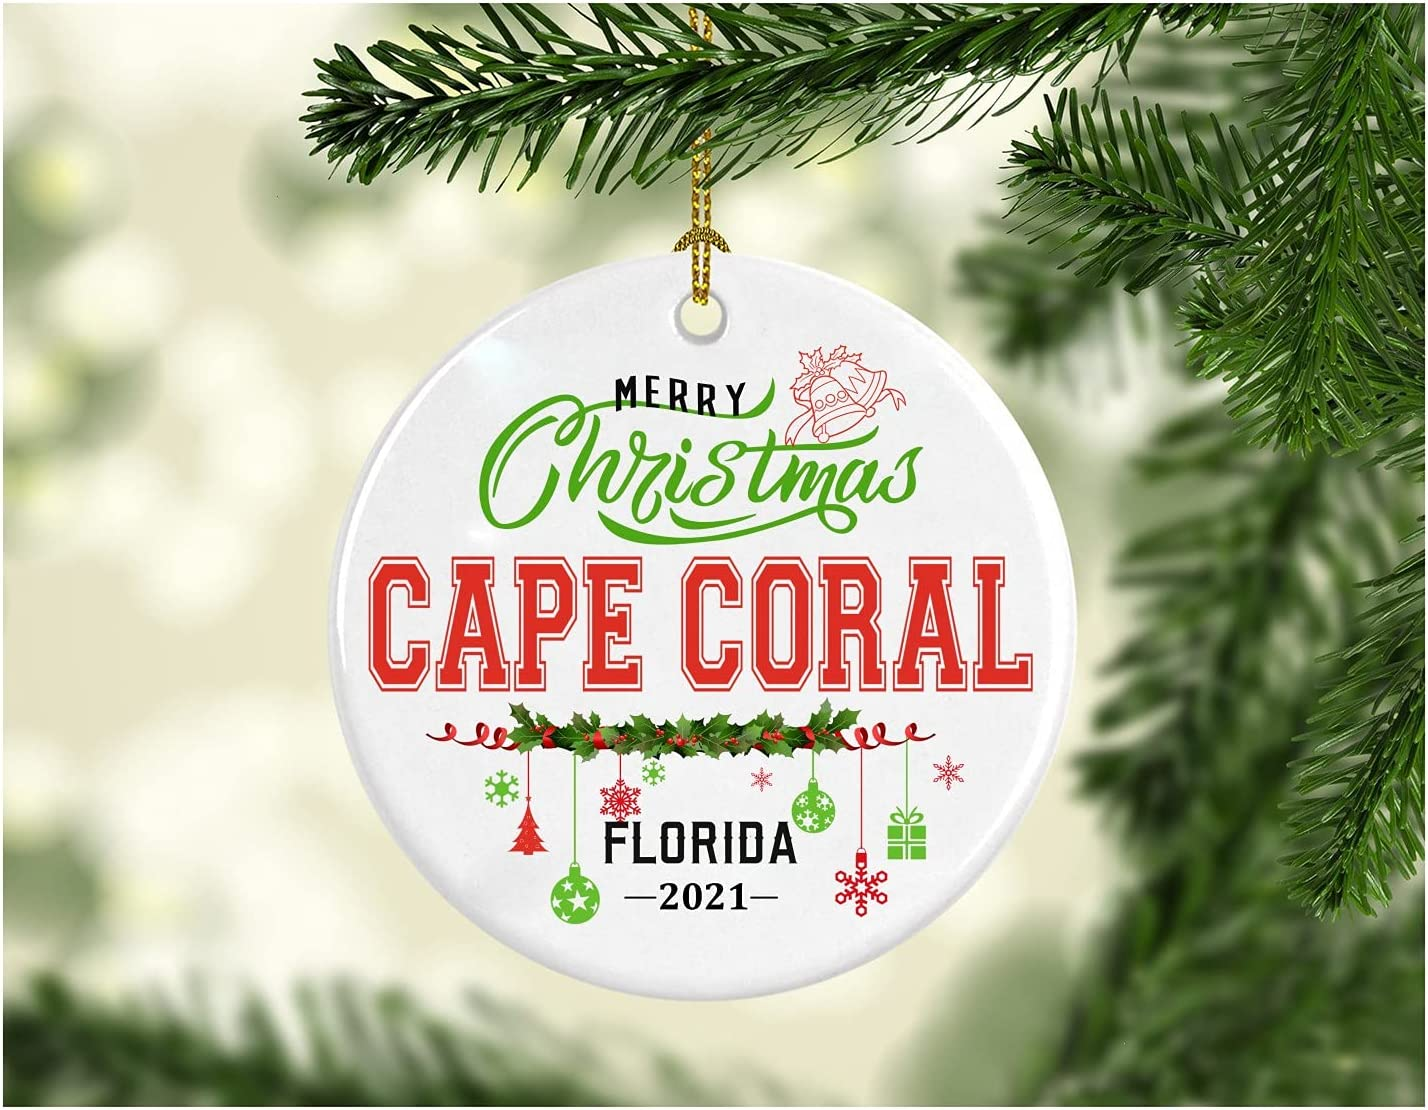 Christmas Decorations Tree Ornament - Gifts Hometown State - Merry Christmas Cape Coral Florida 2021 - Gift for Family Rustic 1St Xmas Tree in Our New Home 3 Inches White